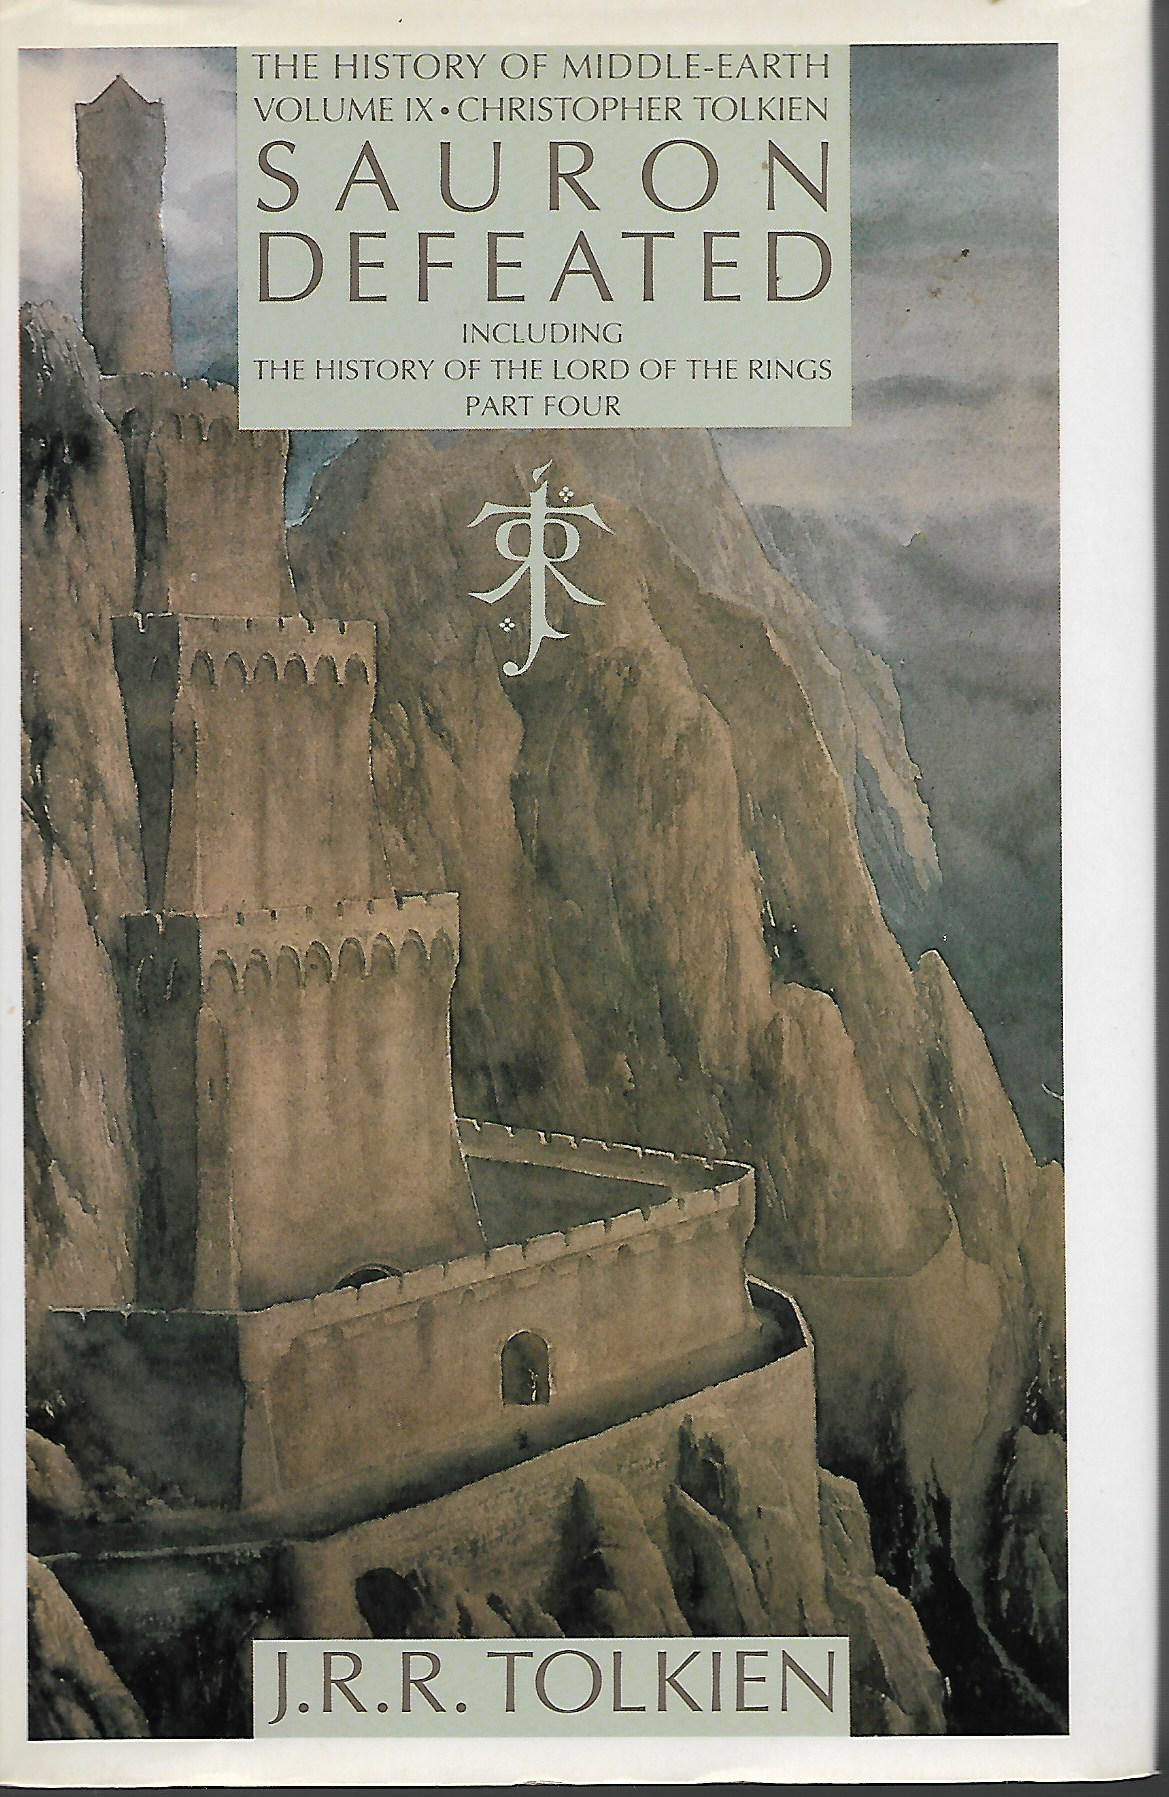 Sauron Defeated: The End of the Third Age: The History of the Lord of the Rings, part four (History of Middle-earth), Tolkien, J.R.R.